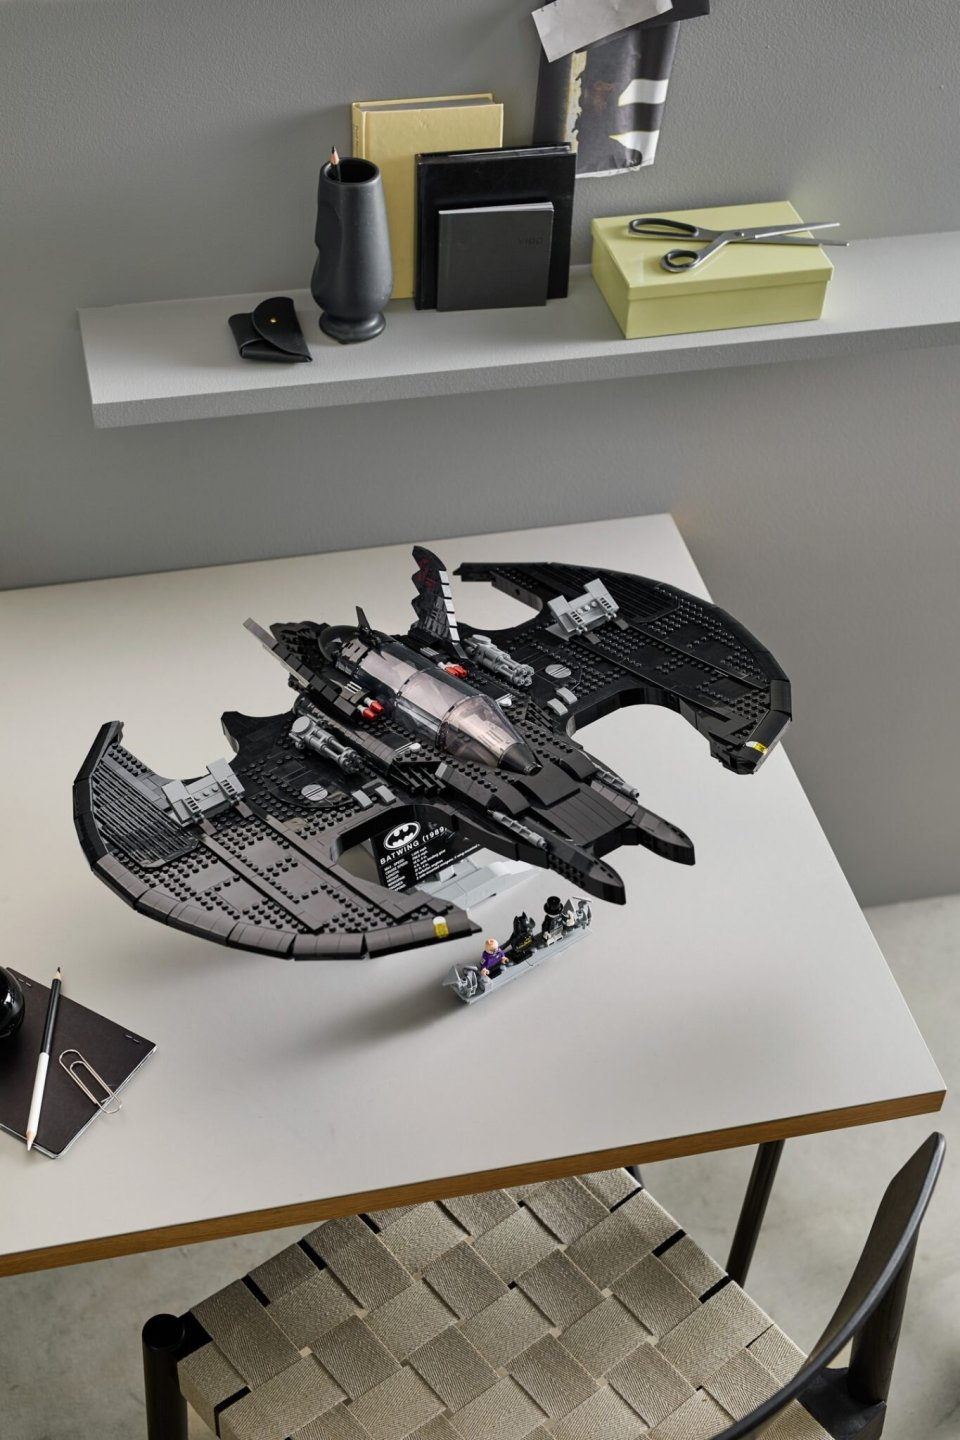 lego-reveals-its-awesome-2300-piece-batwing-set-from-tim-burtons-1989-batman7.jpg